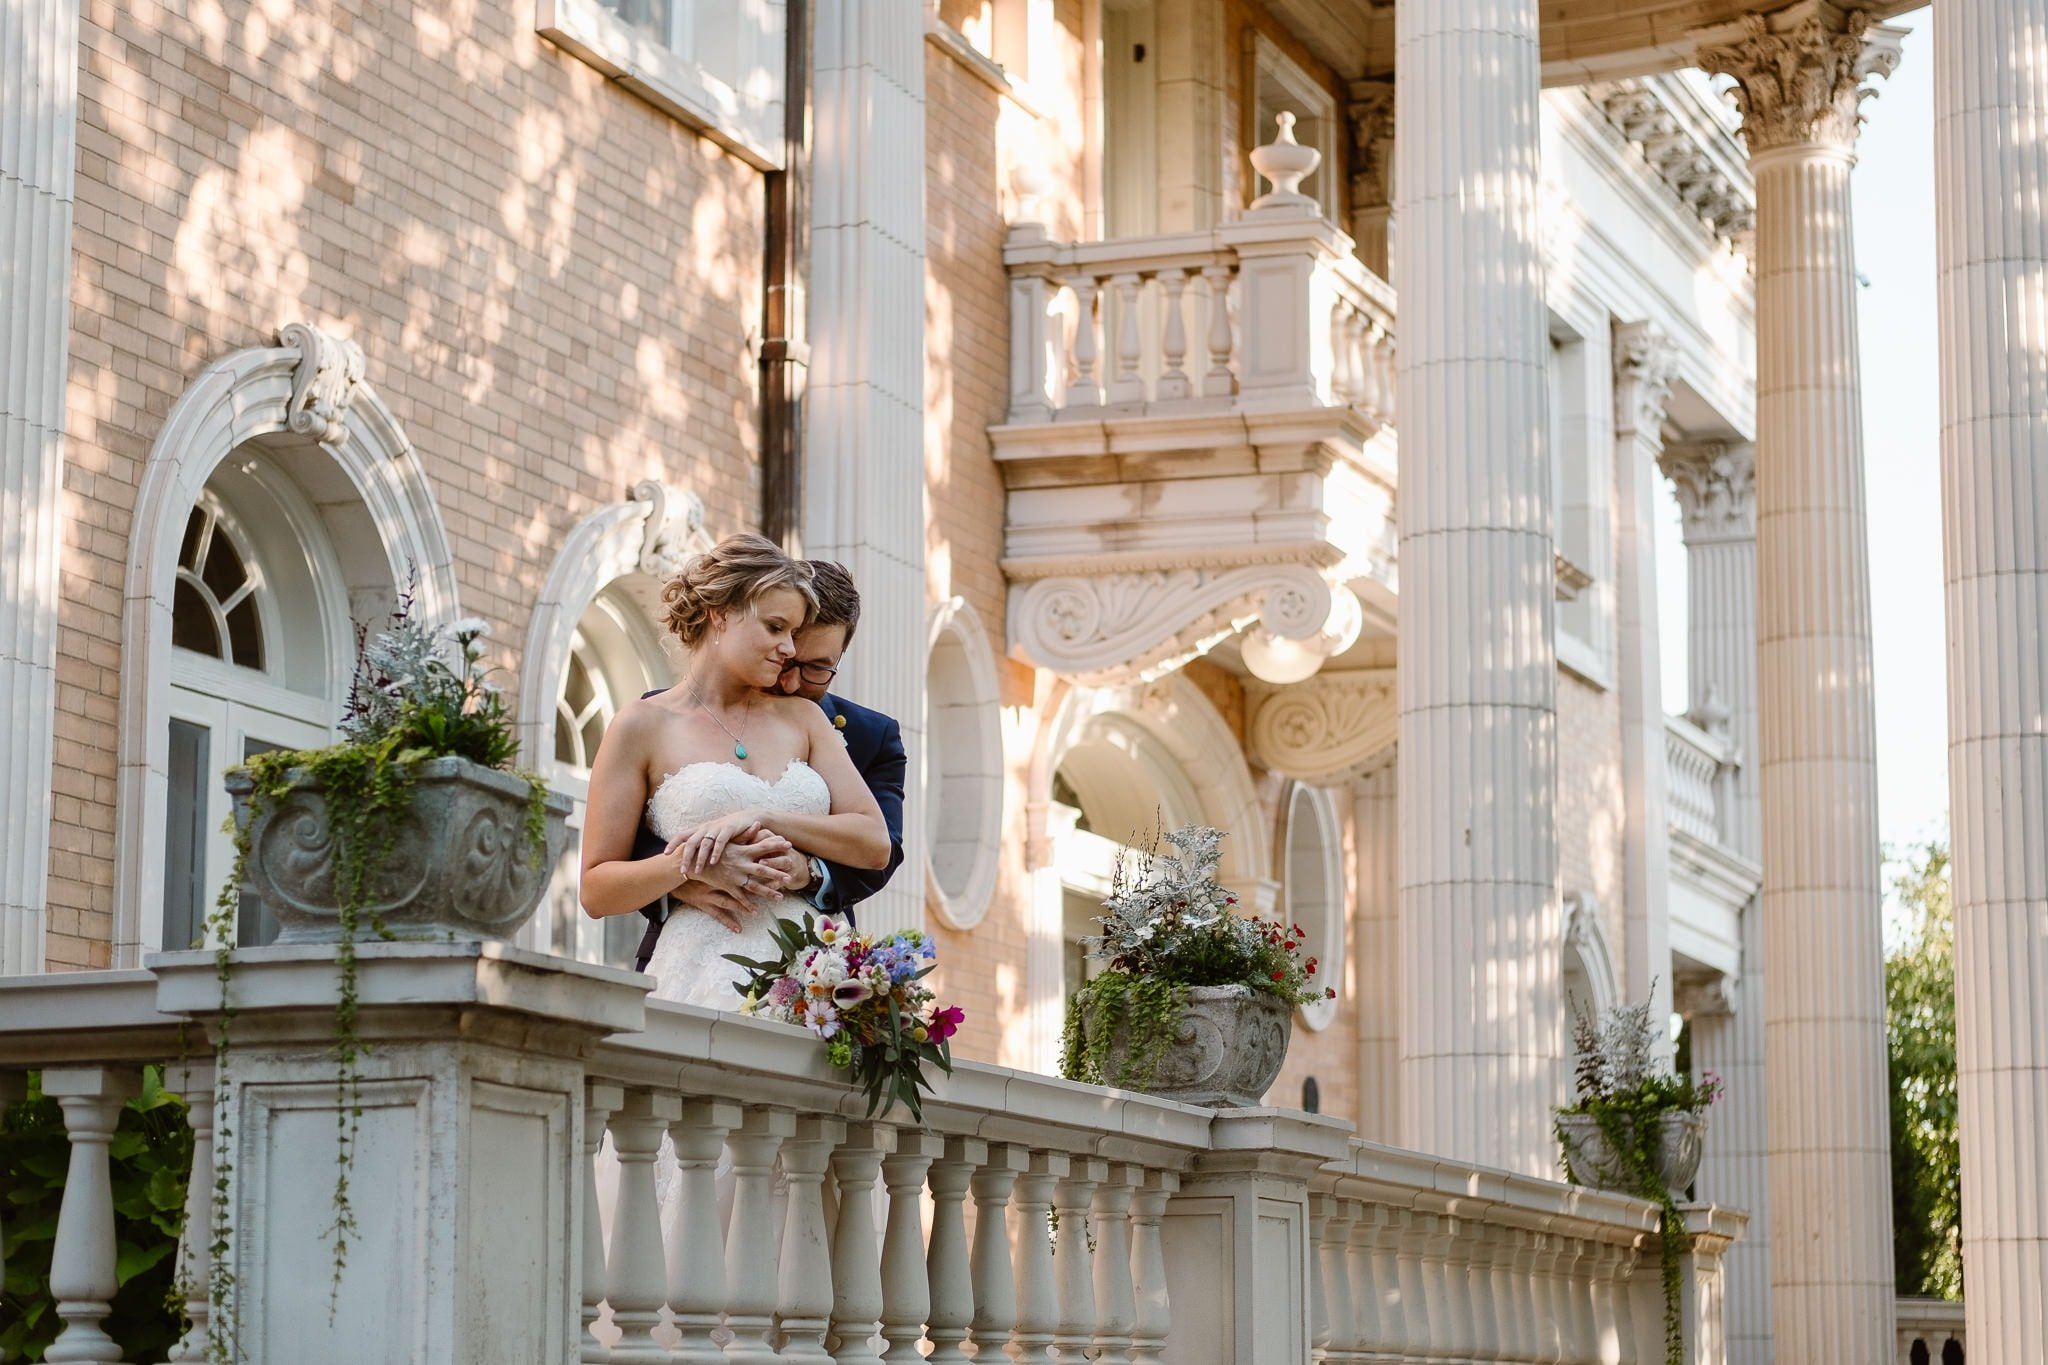 Cara Jo + Keith's Grant Humphreys Mansion Wedding